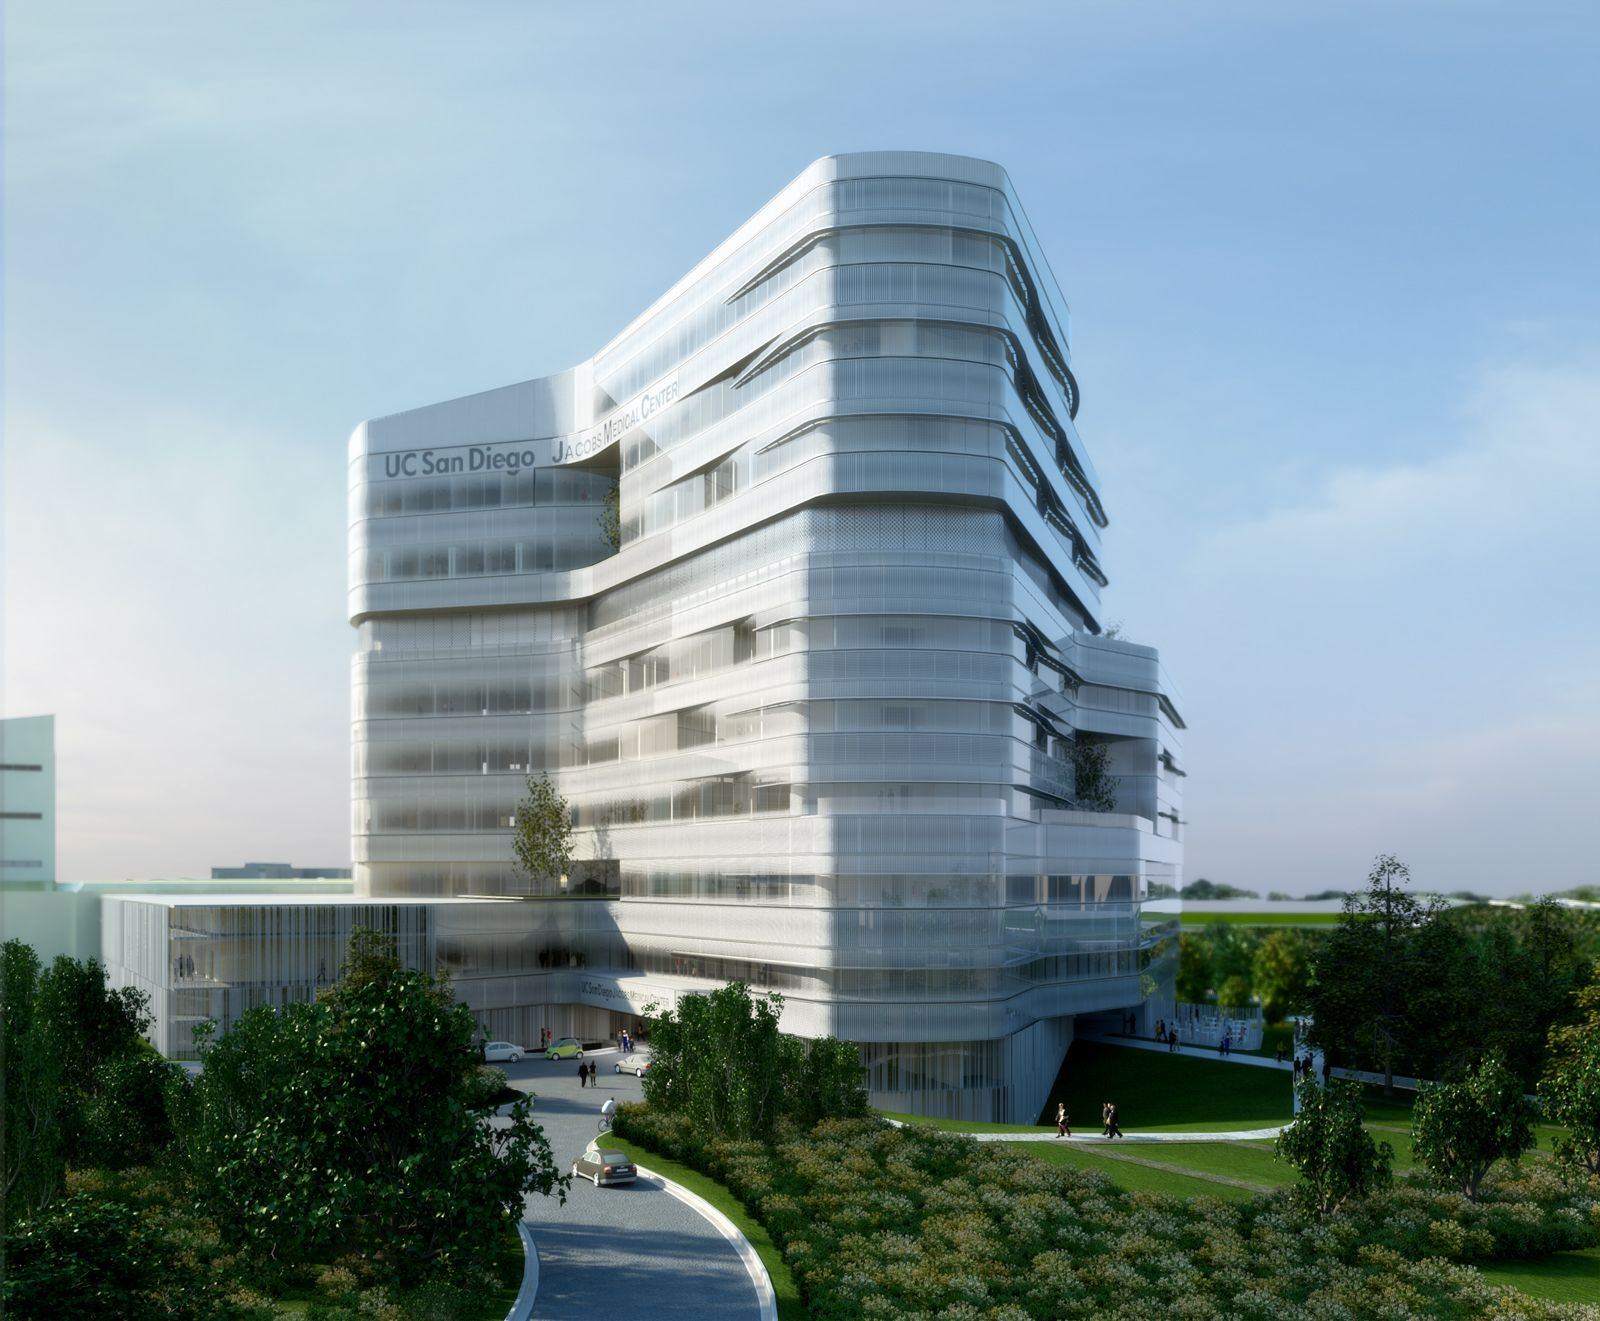 UCSD_Jacobs_rendering_courtesy_of_Cannon_Design